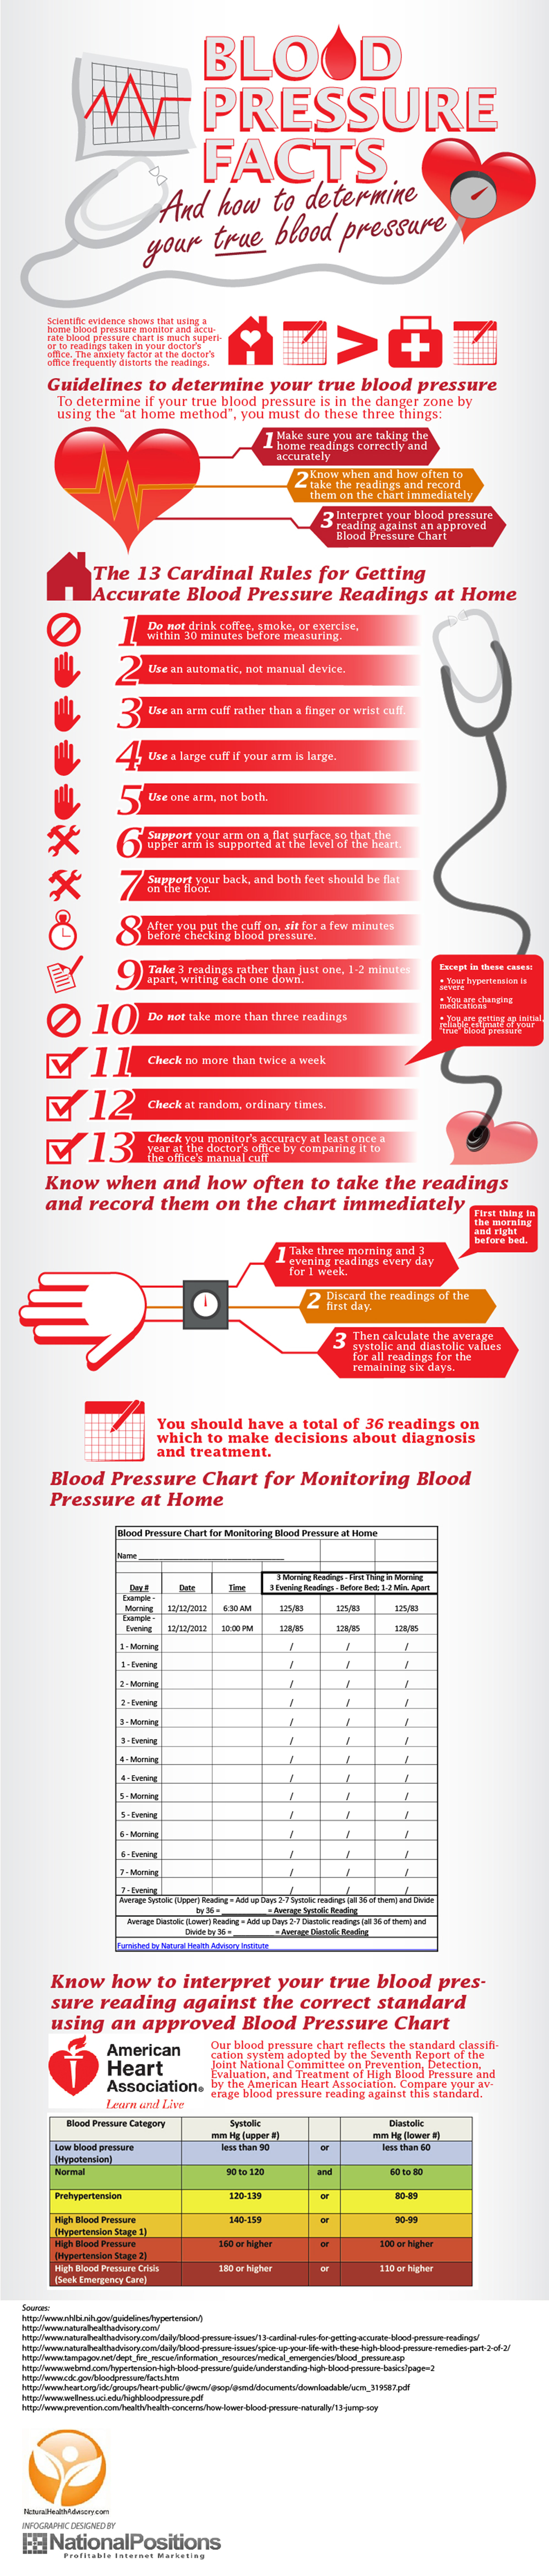 Blood pressure chart how to determine your true blood pressure nvjuhfo Image collections